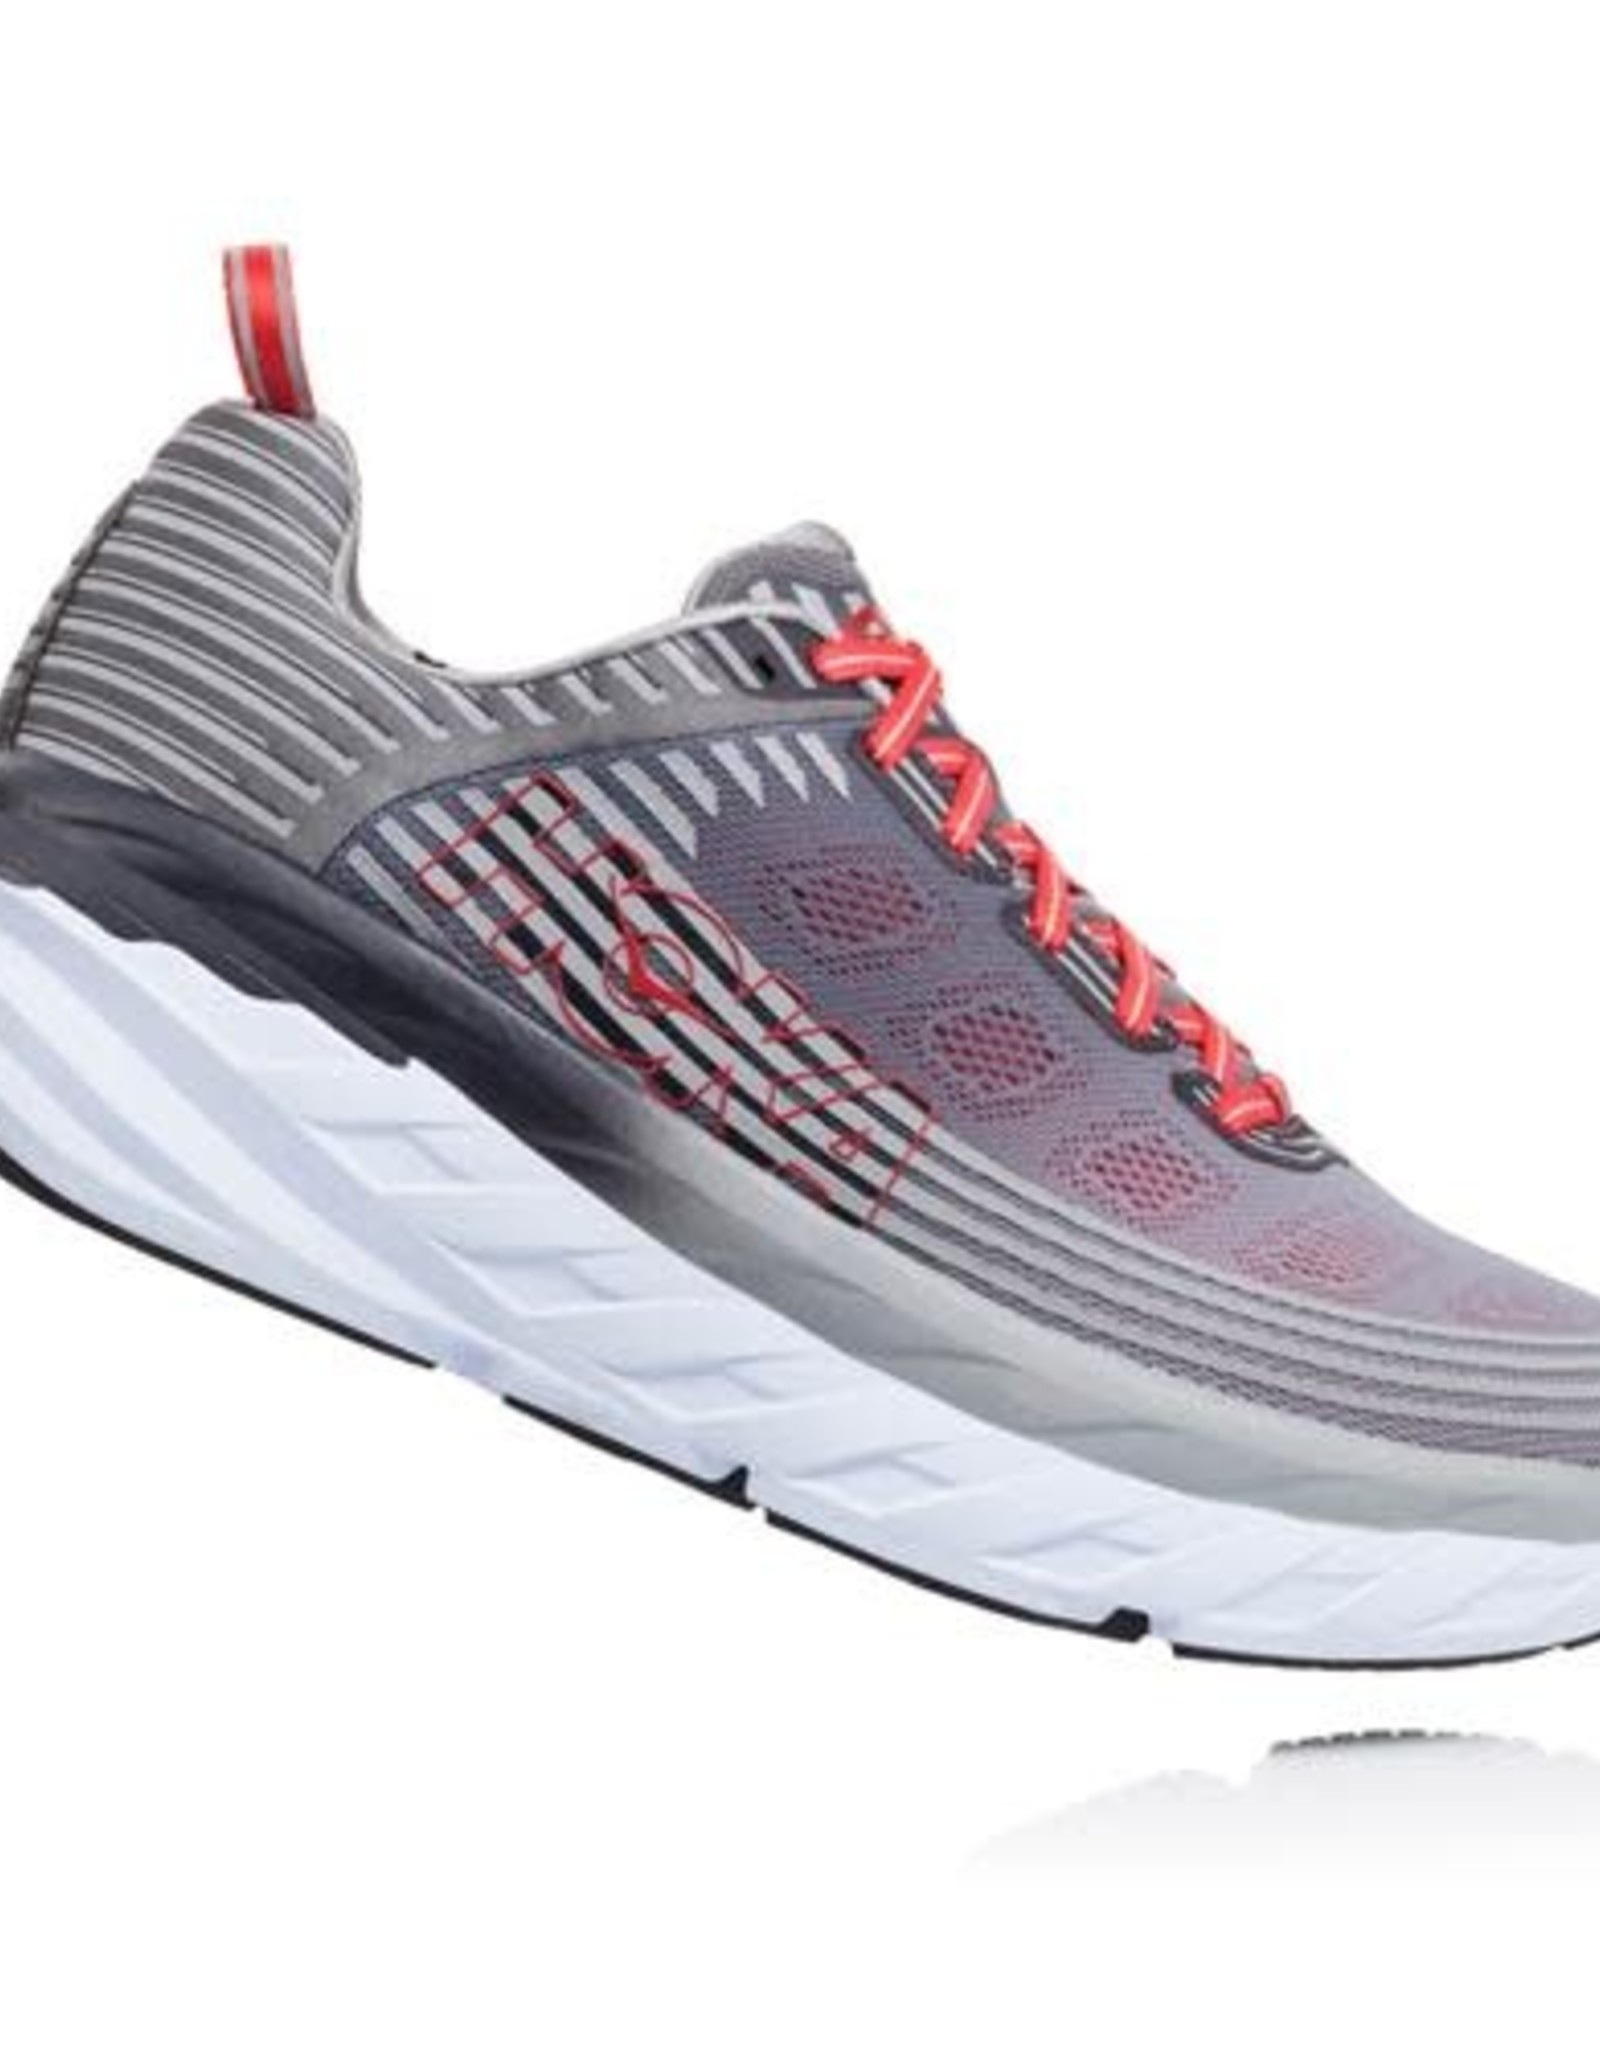 Hoka One One 1019271 M Bondi 6 wide Maat US 12 - Eur 46 2/3